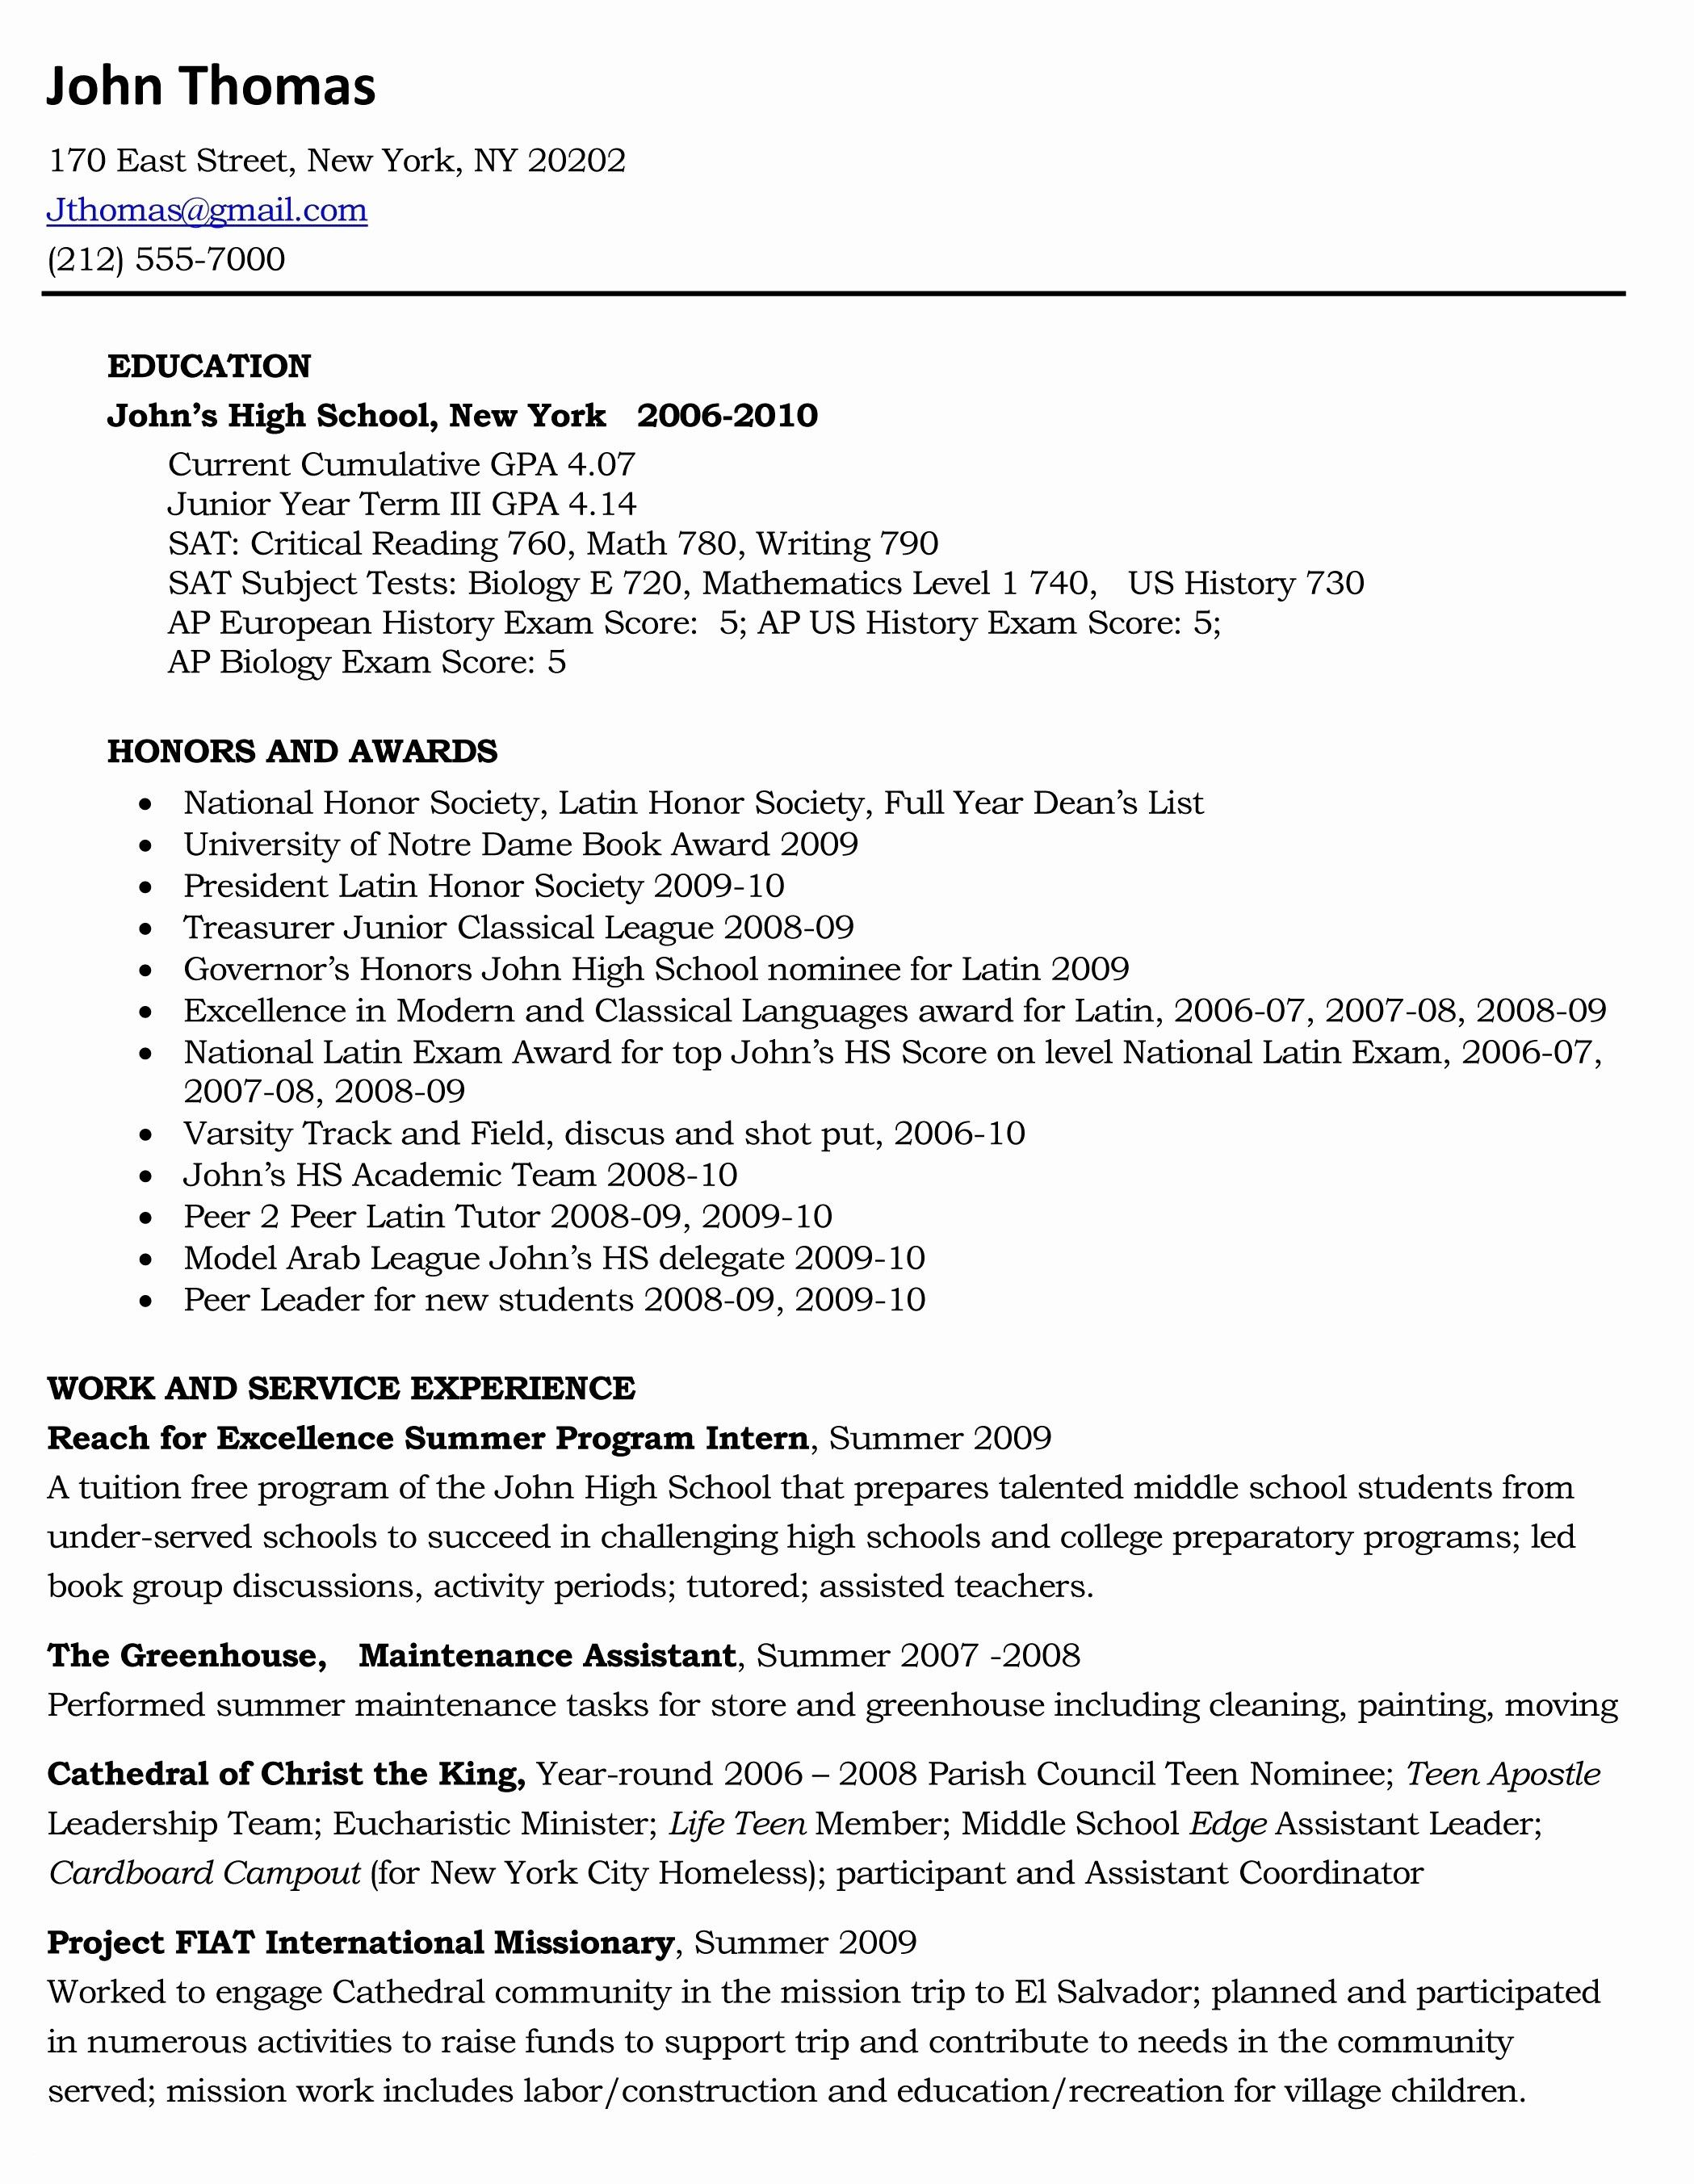 Sample Resume Xls Format High School Resume College Resume